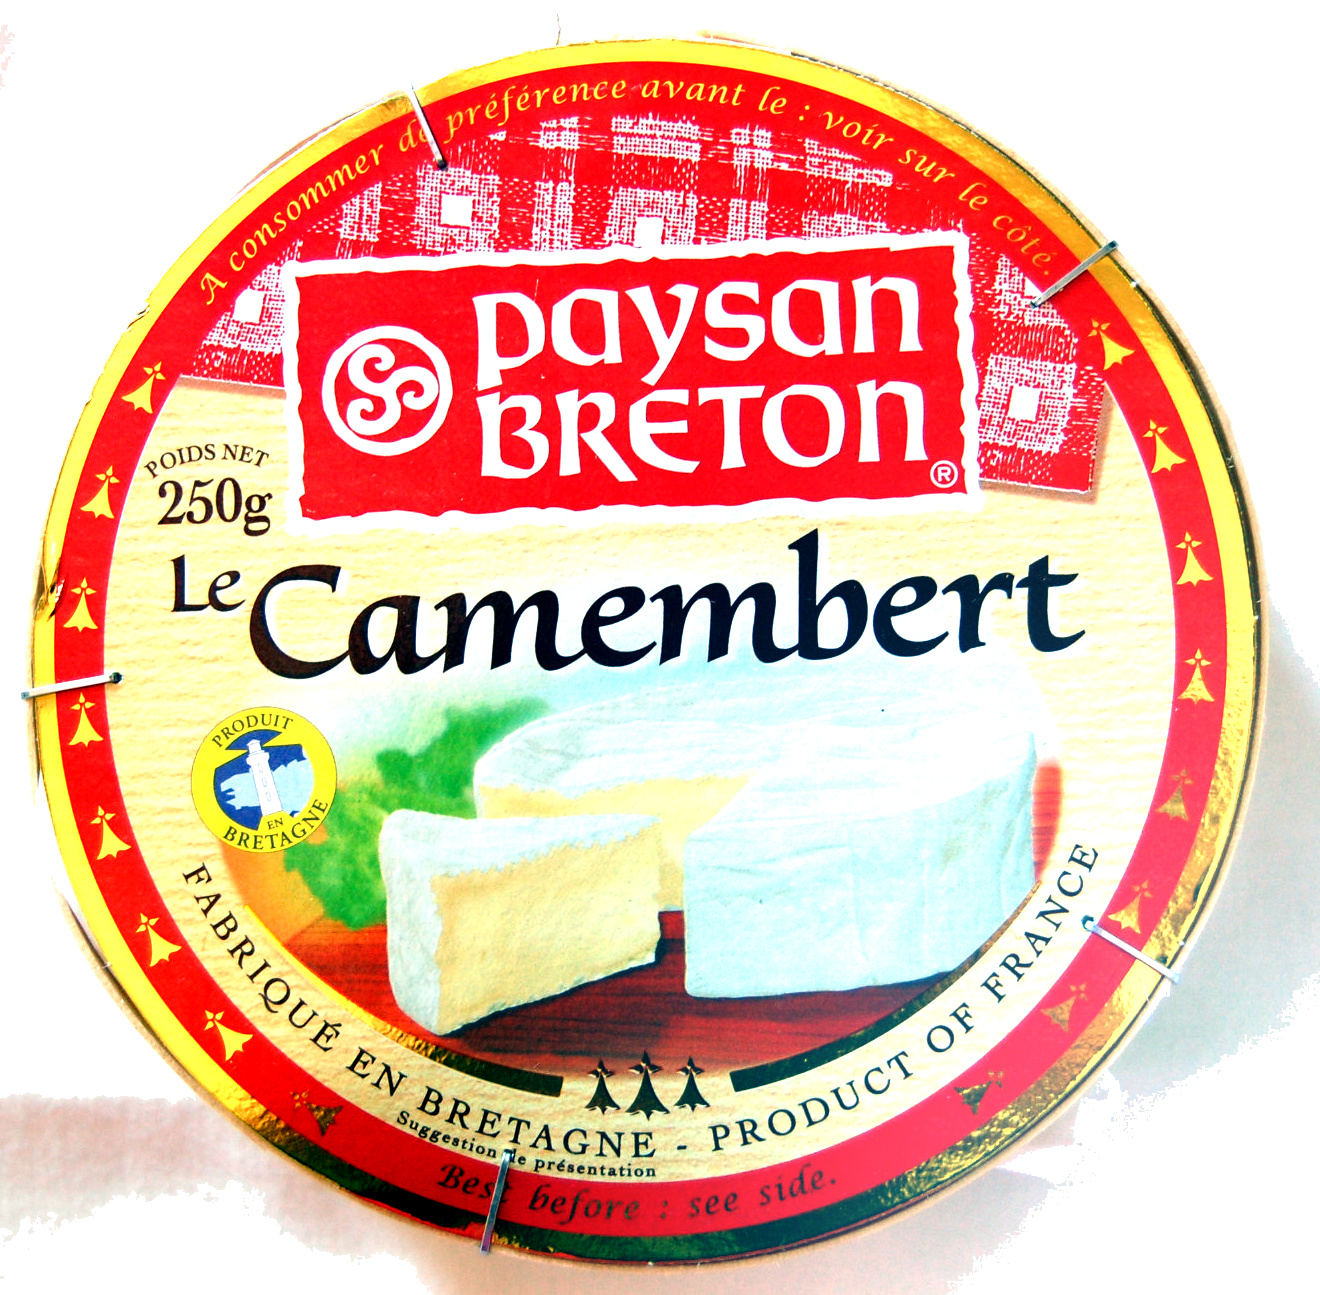 Le camembert - Product